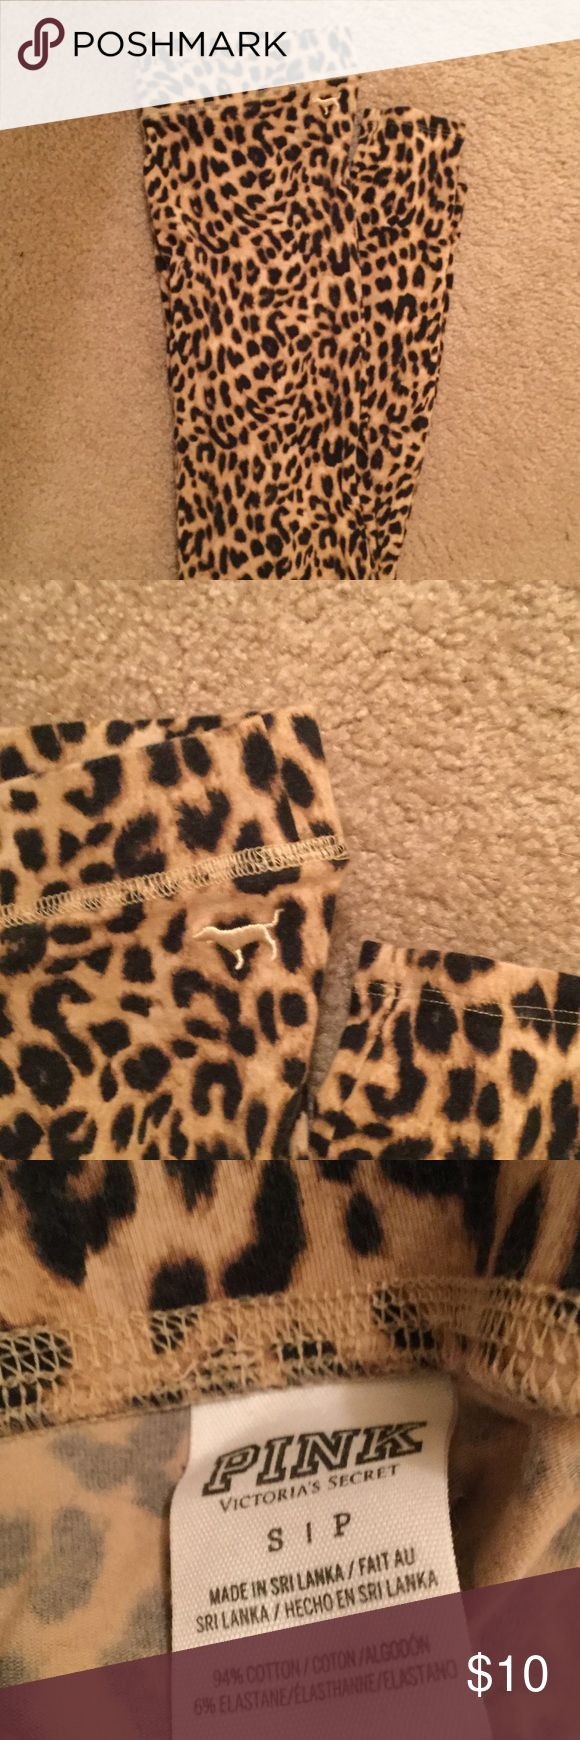 VS Pink cheetah leggings VS Pink cheetah leggings- great condition only worn twice PINK Victoria's Secret Pants Leggings